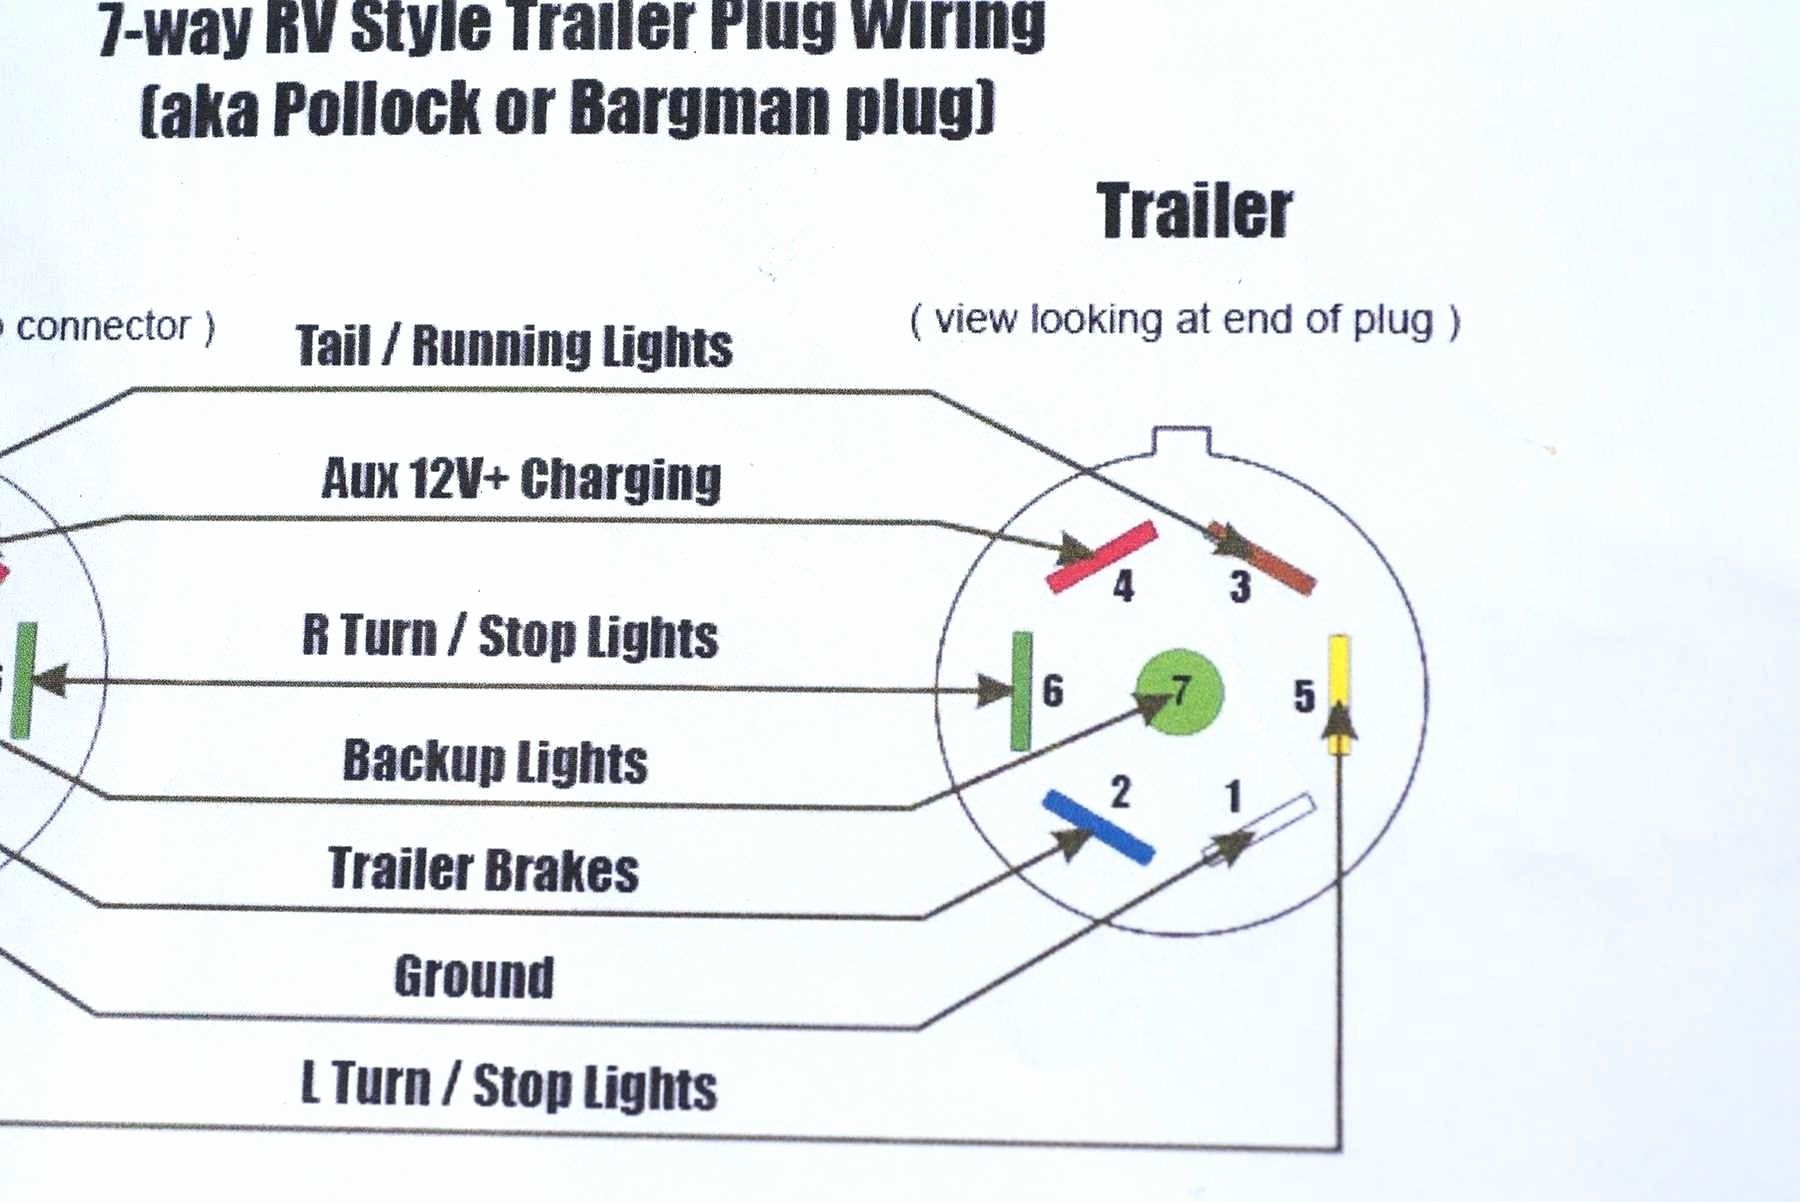 2013 Chevrolet Trailer Wiring Diagram